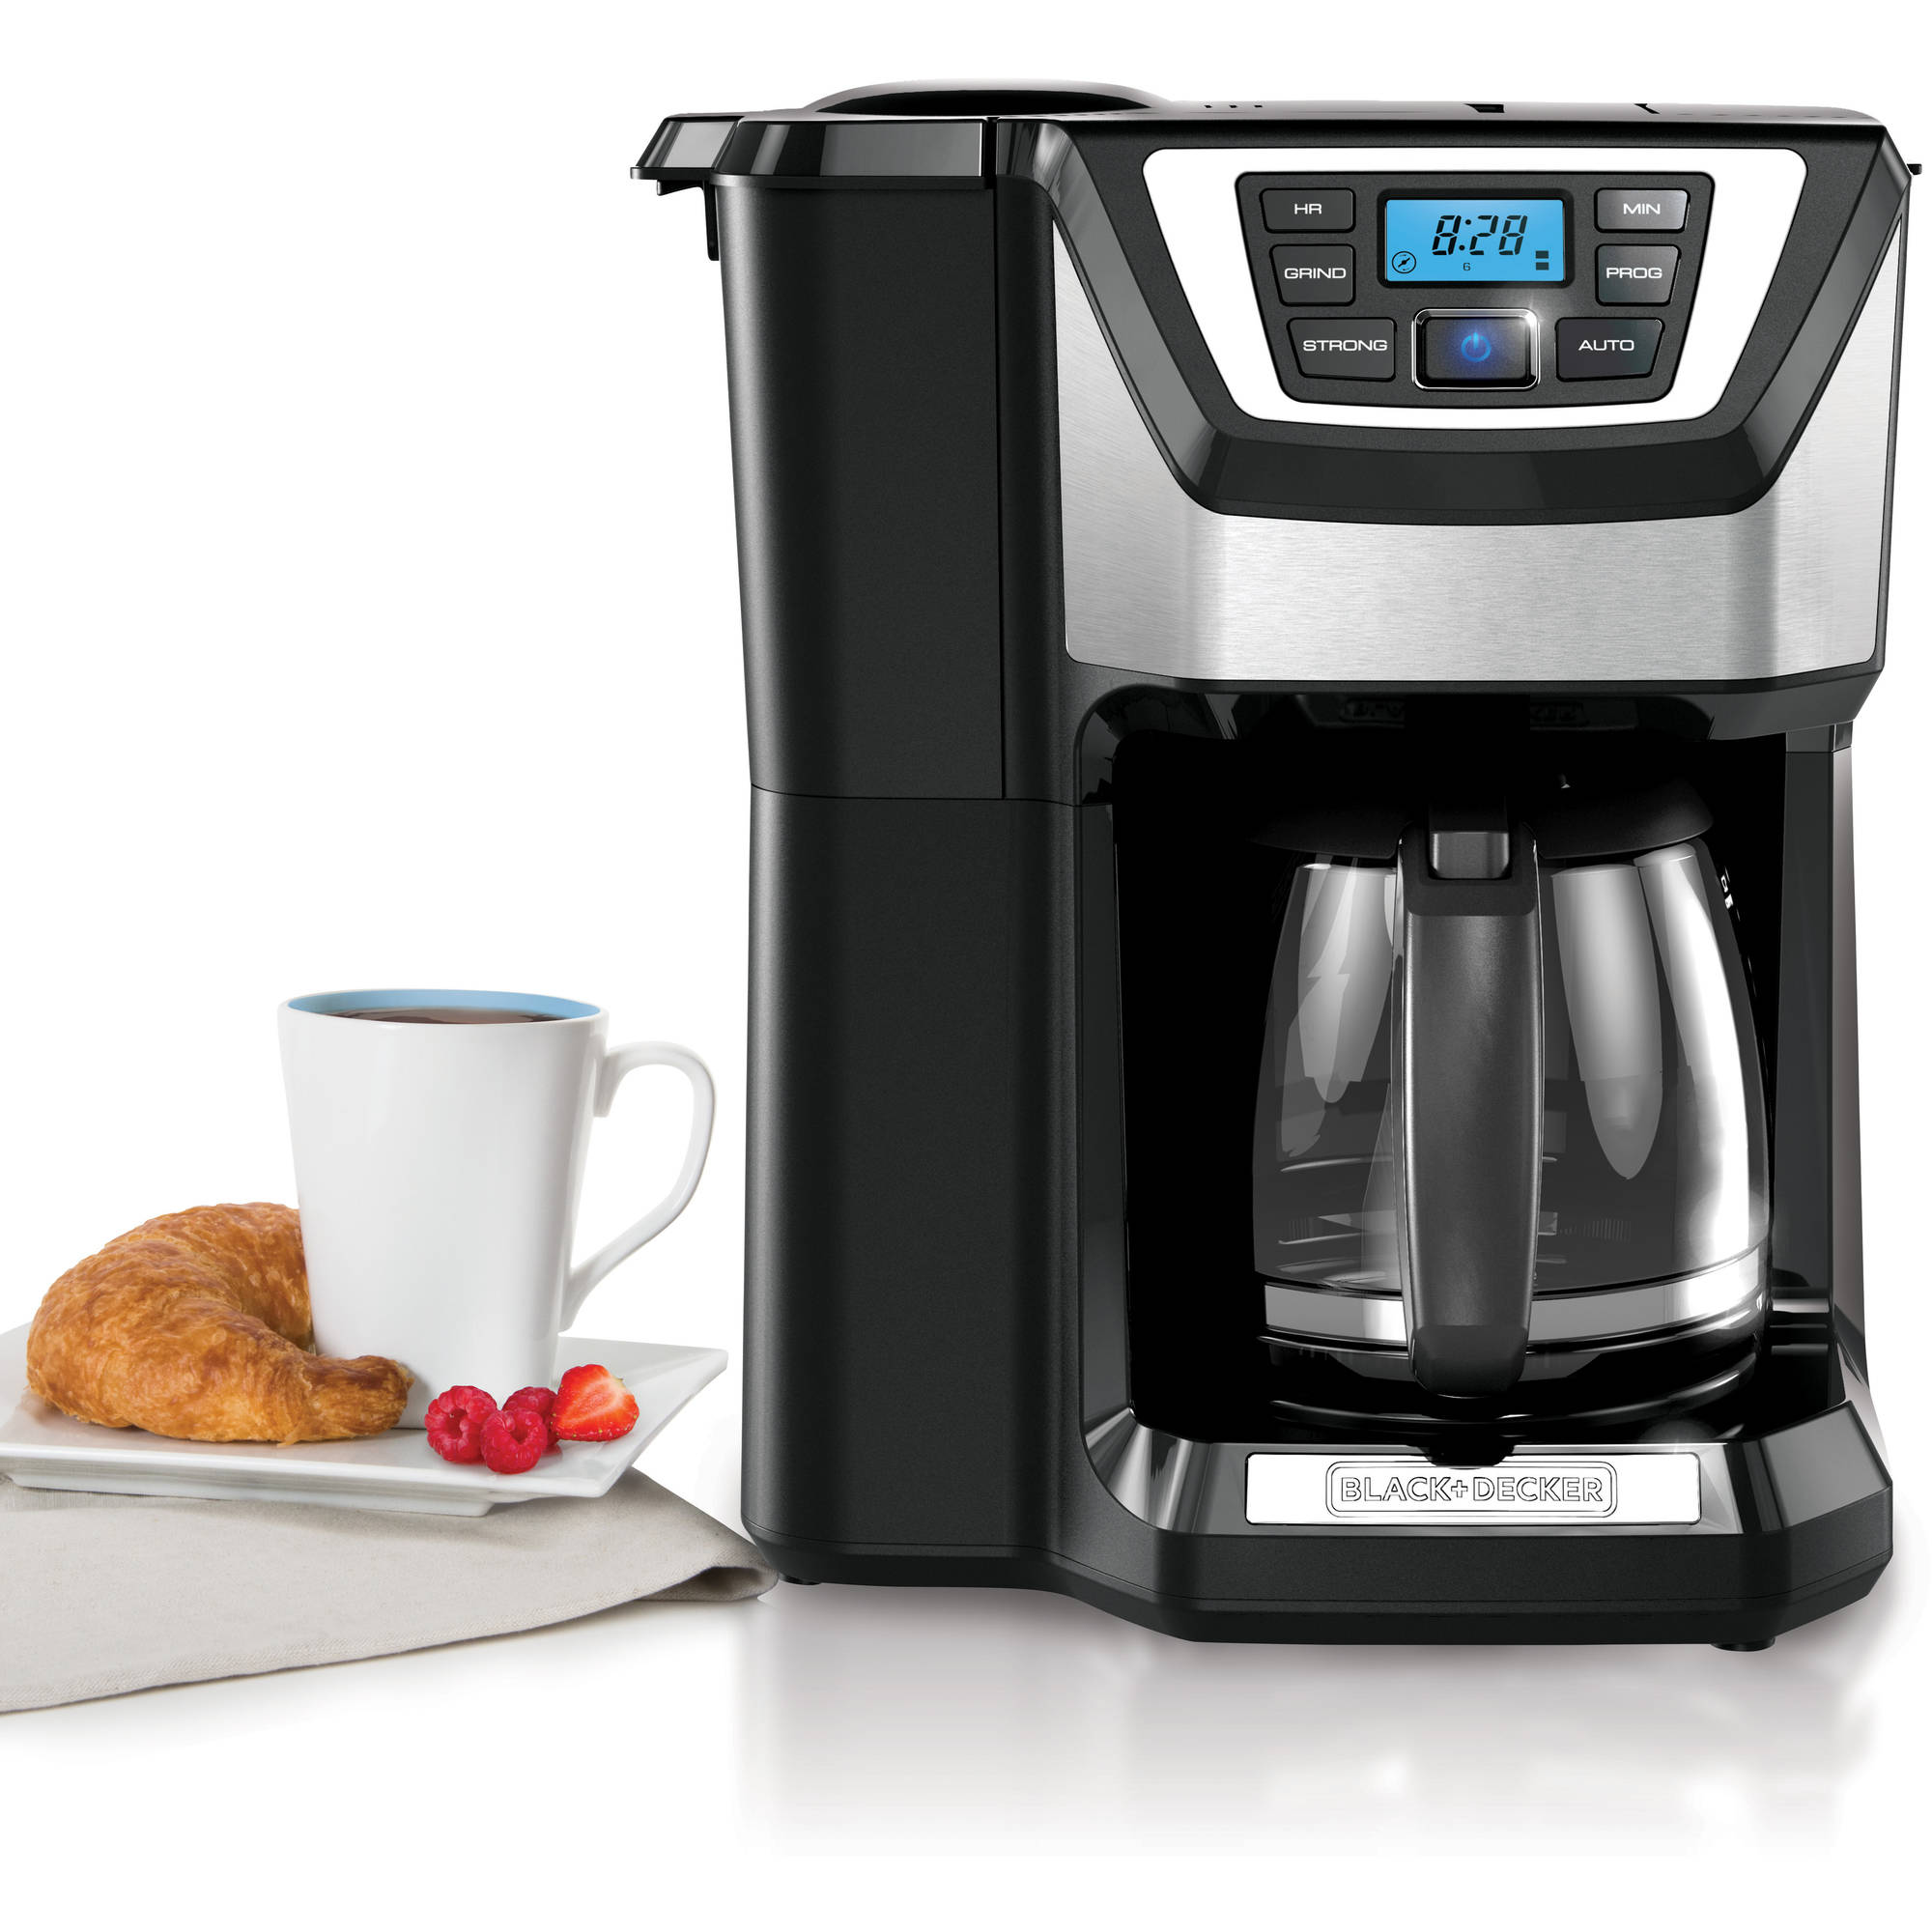 Black and decker coffee maker 12 cup programmable - Black Decker Mill And Brew 12 Cup Programmable Coffee Maker With Grinder Cm5000gd Walmart Com